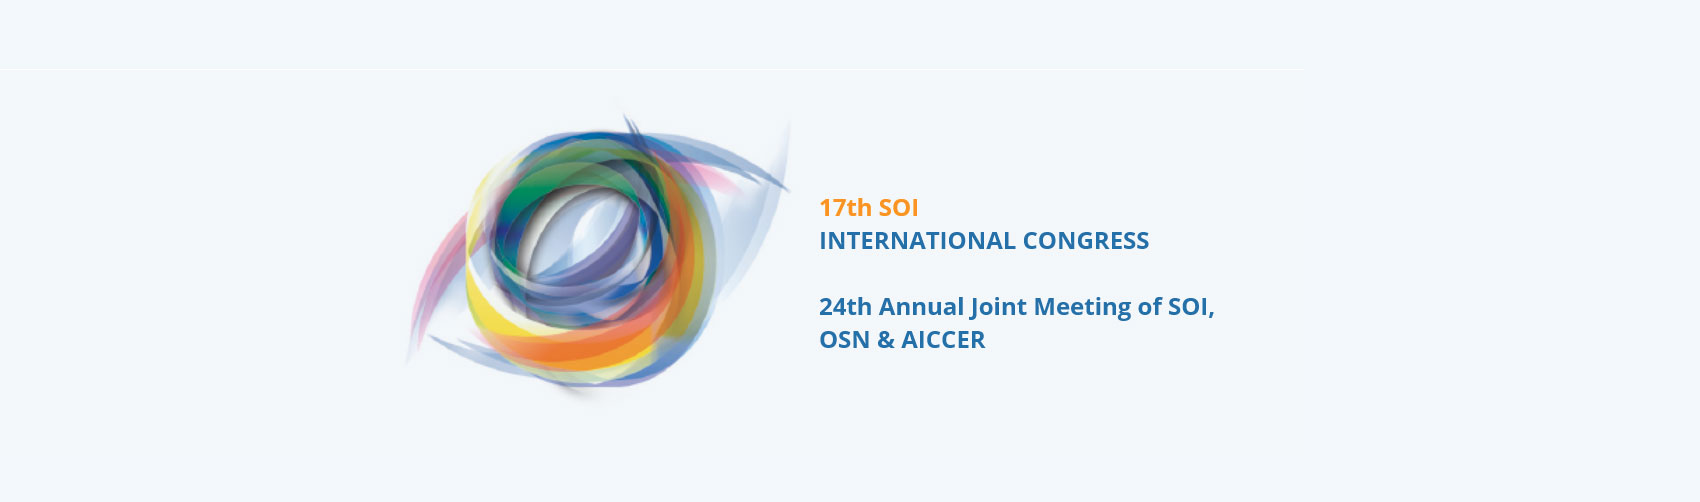 17th SOI - INTERNATIONAL CONGRESS